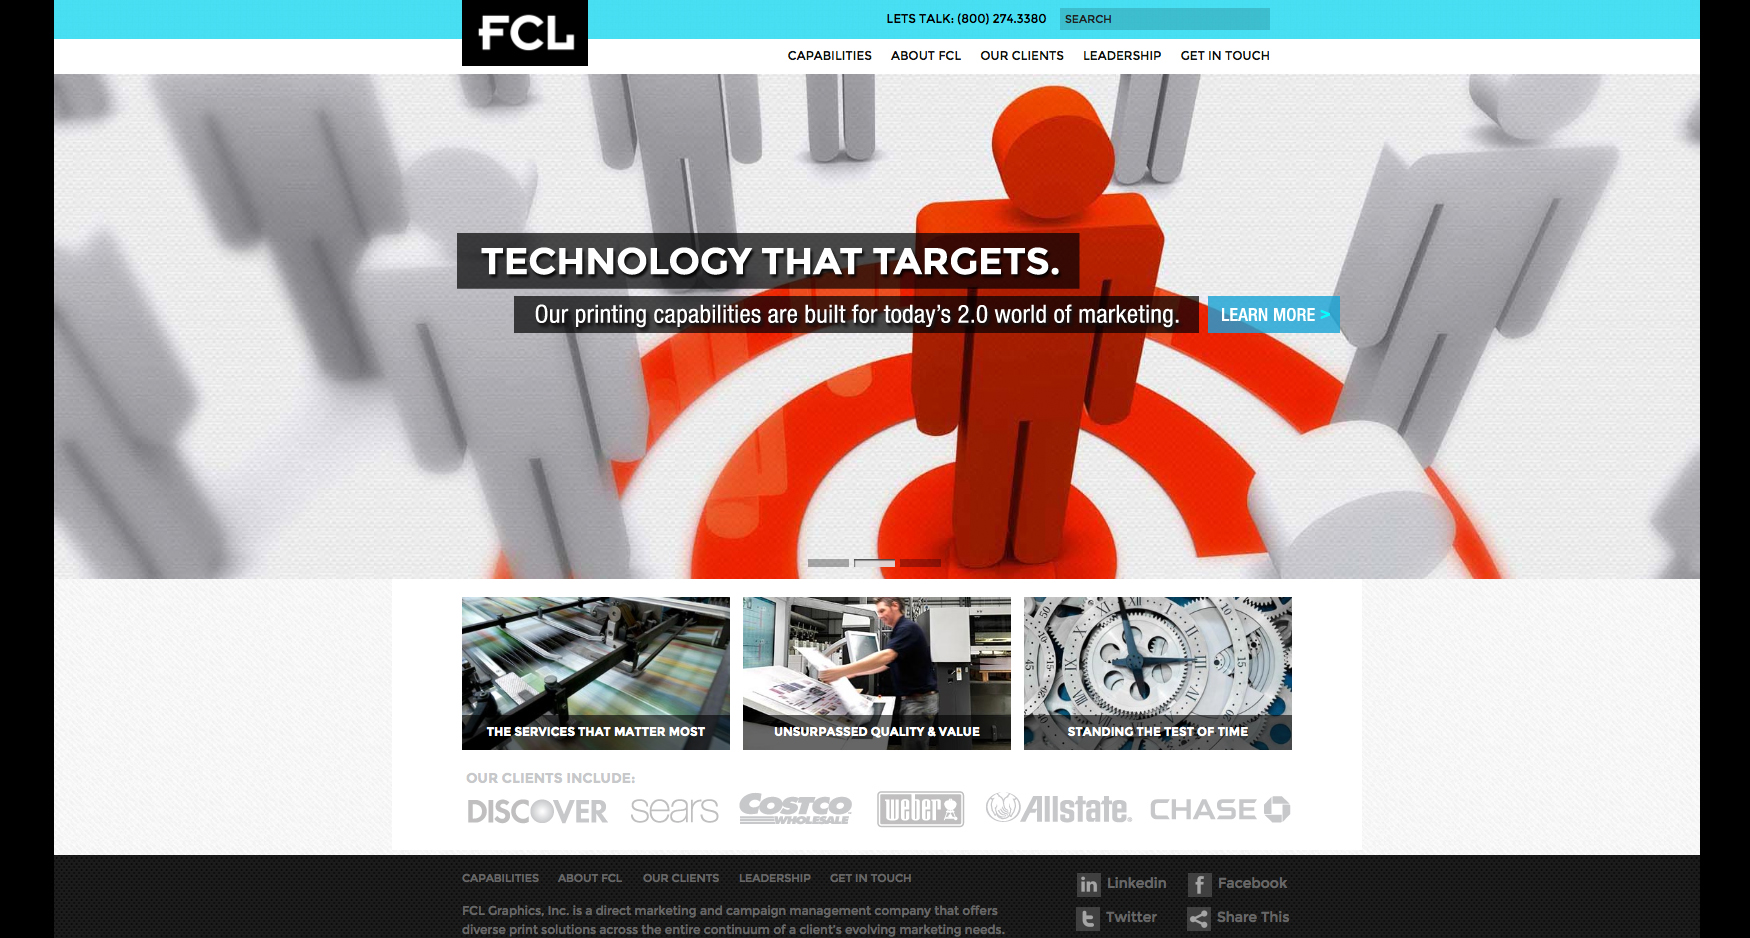 2 FCL Homepage 2 - FCL GRAPHICS - CORPORATE WEBSITE